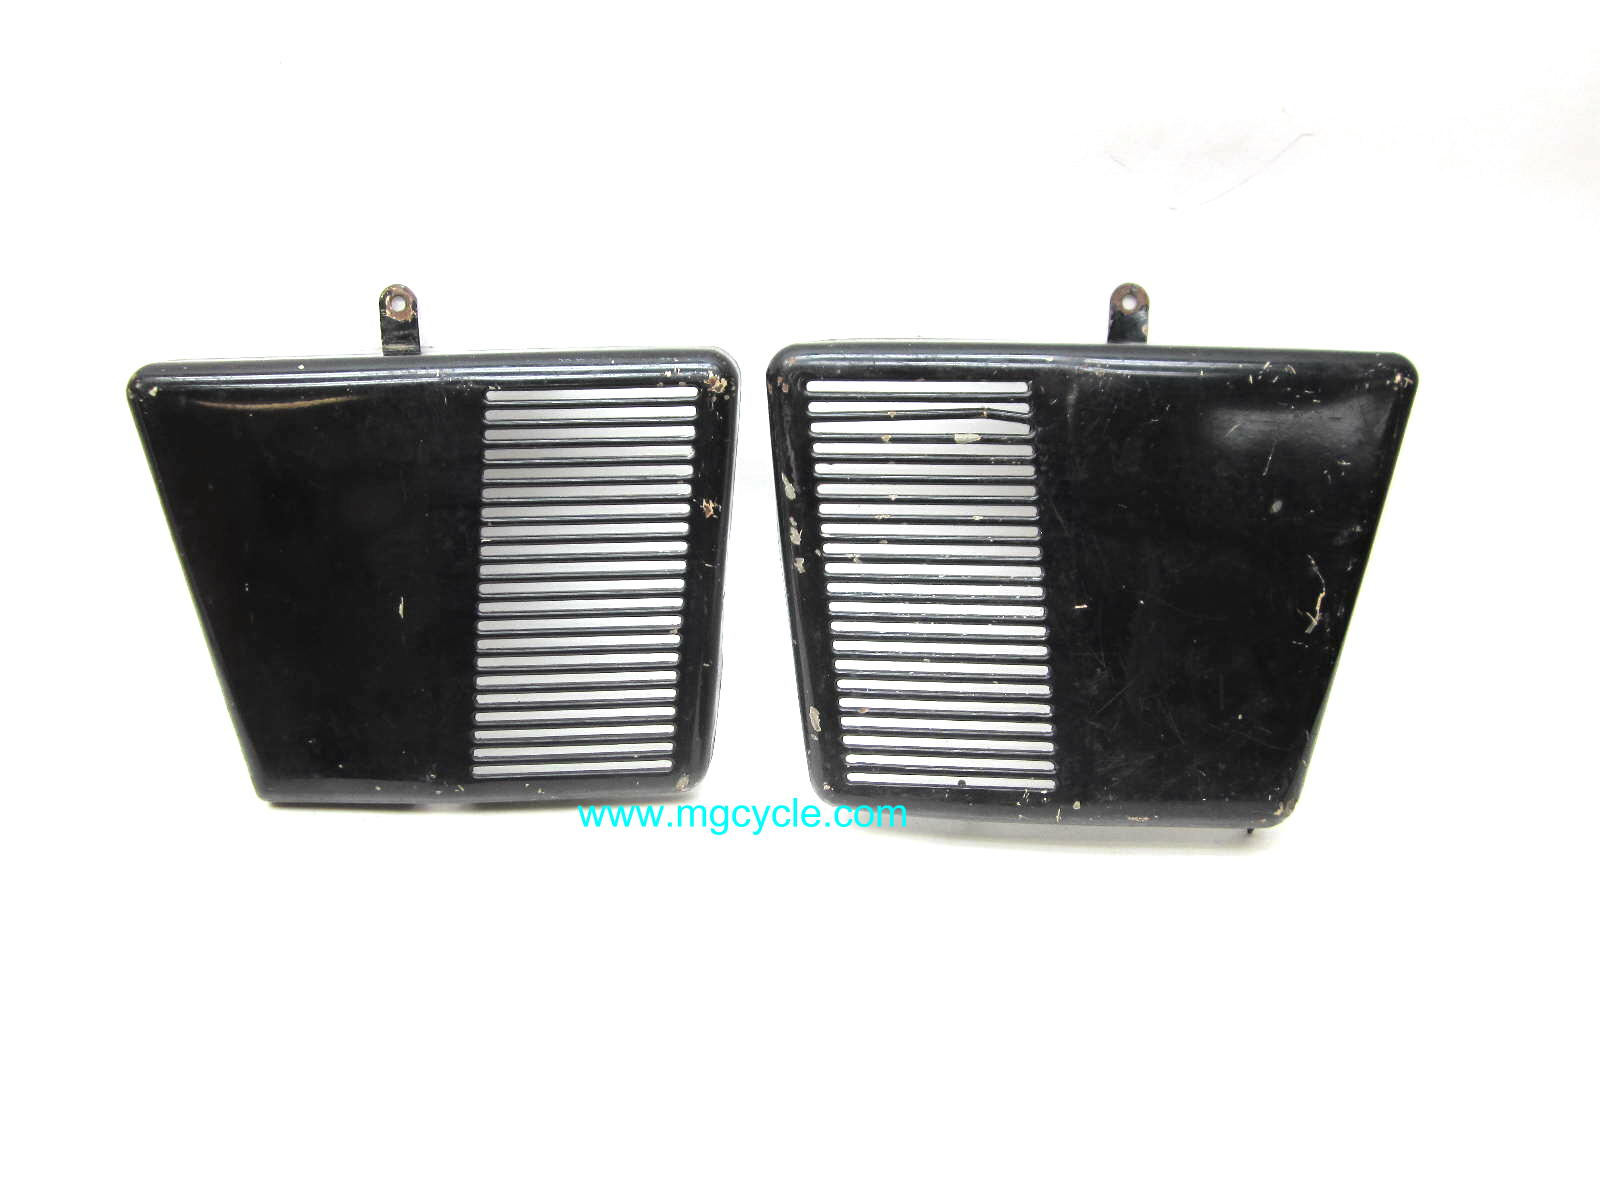 USED: PAIR Eldorado/Ambassador battery covers, poor condition